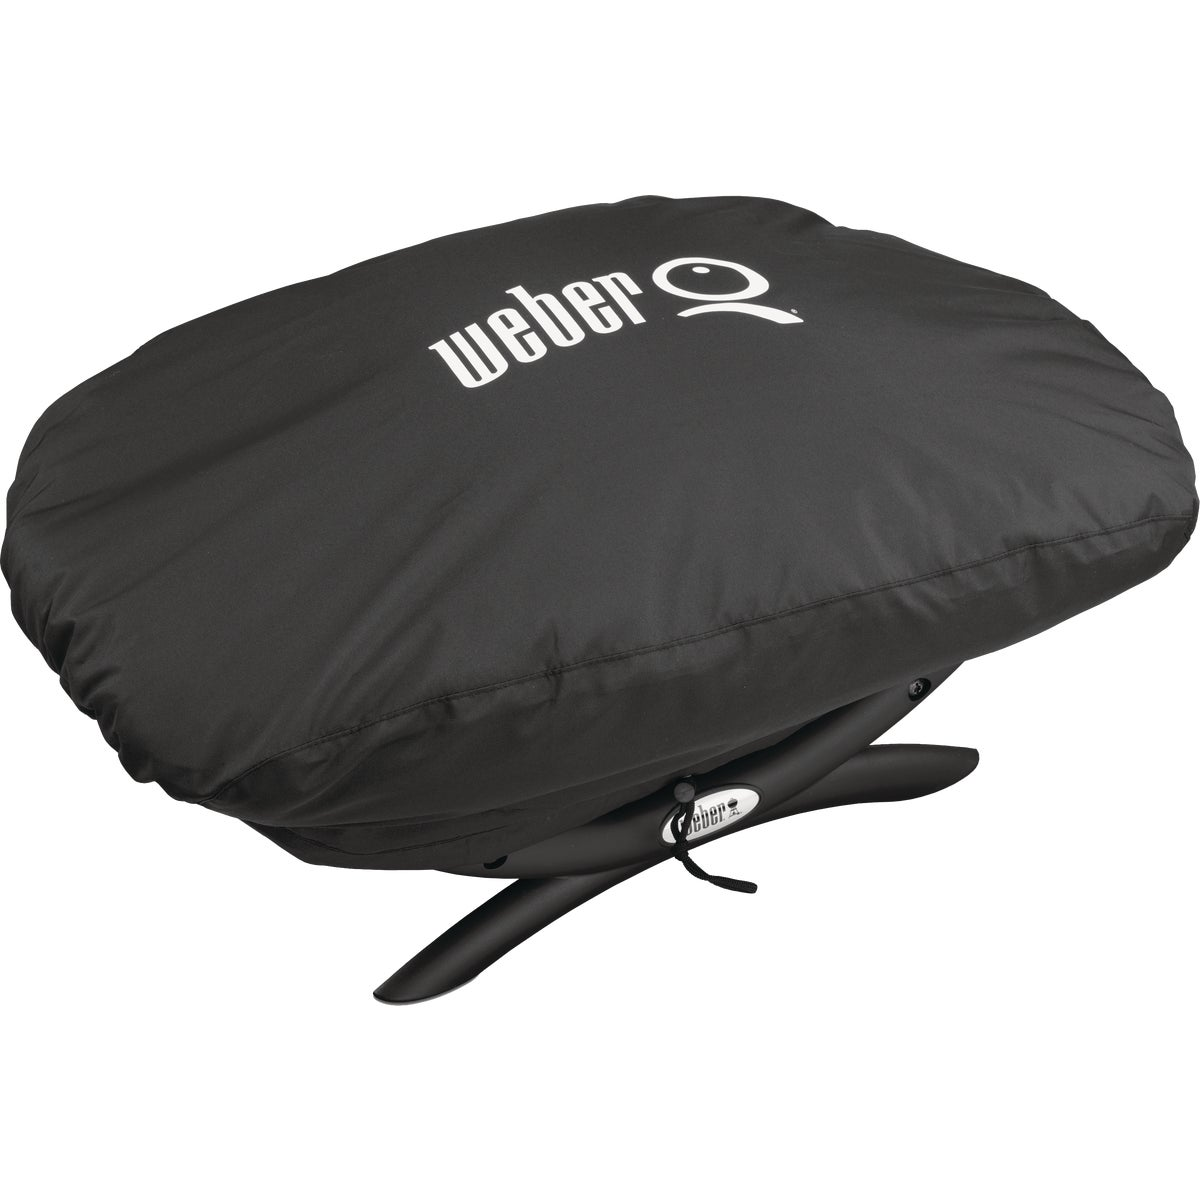 WEBER BABY Q GRILL COVER